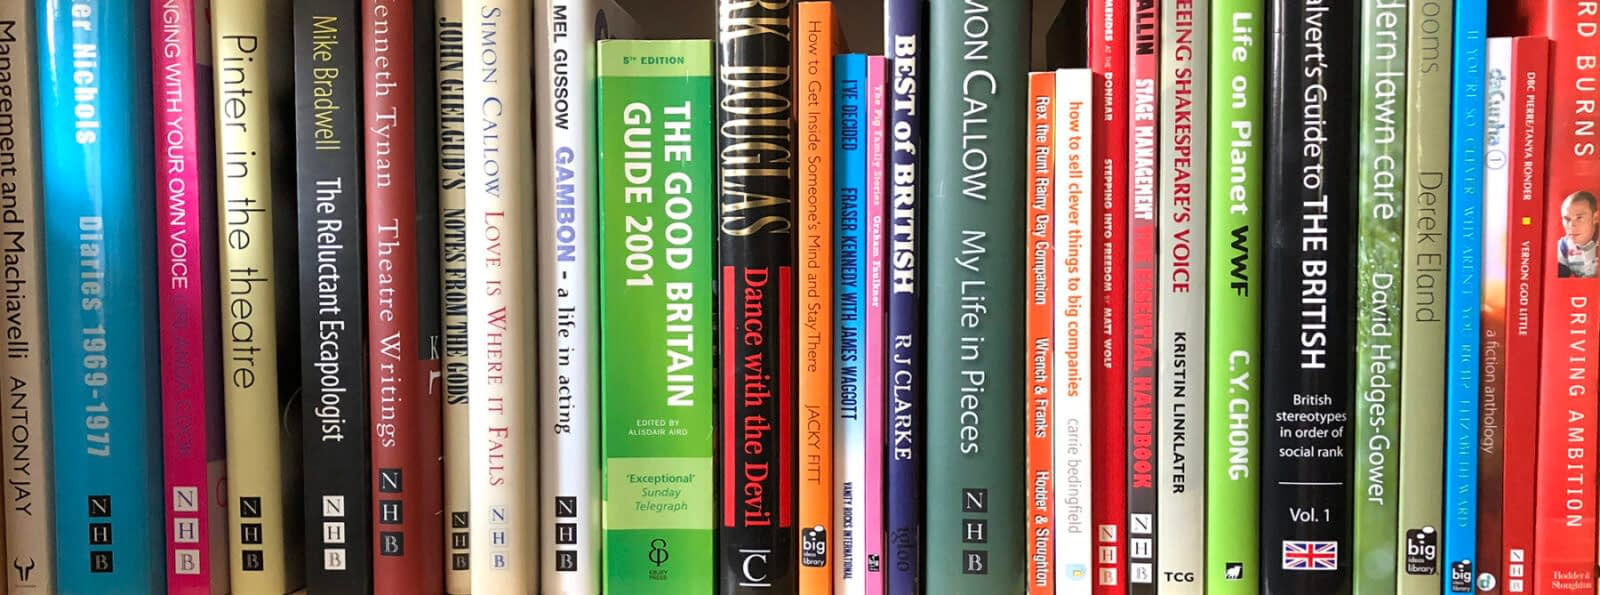 Book publishing | The Big Ideas Library